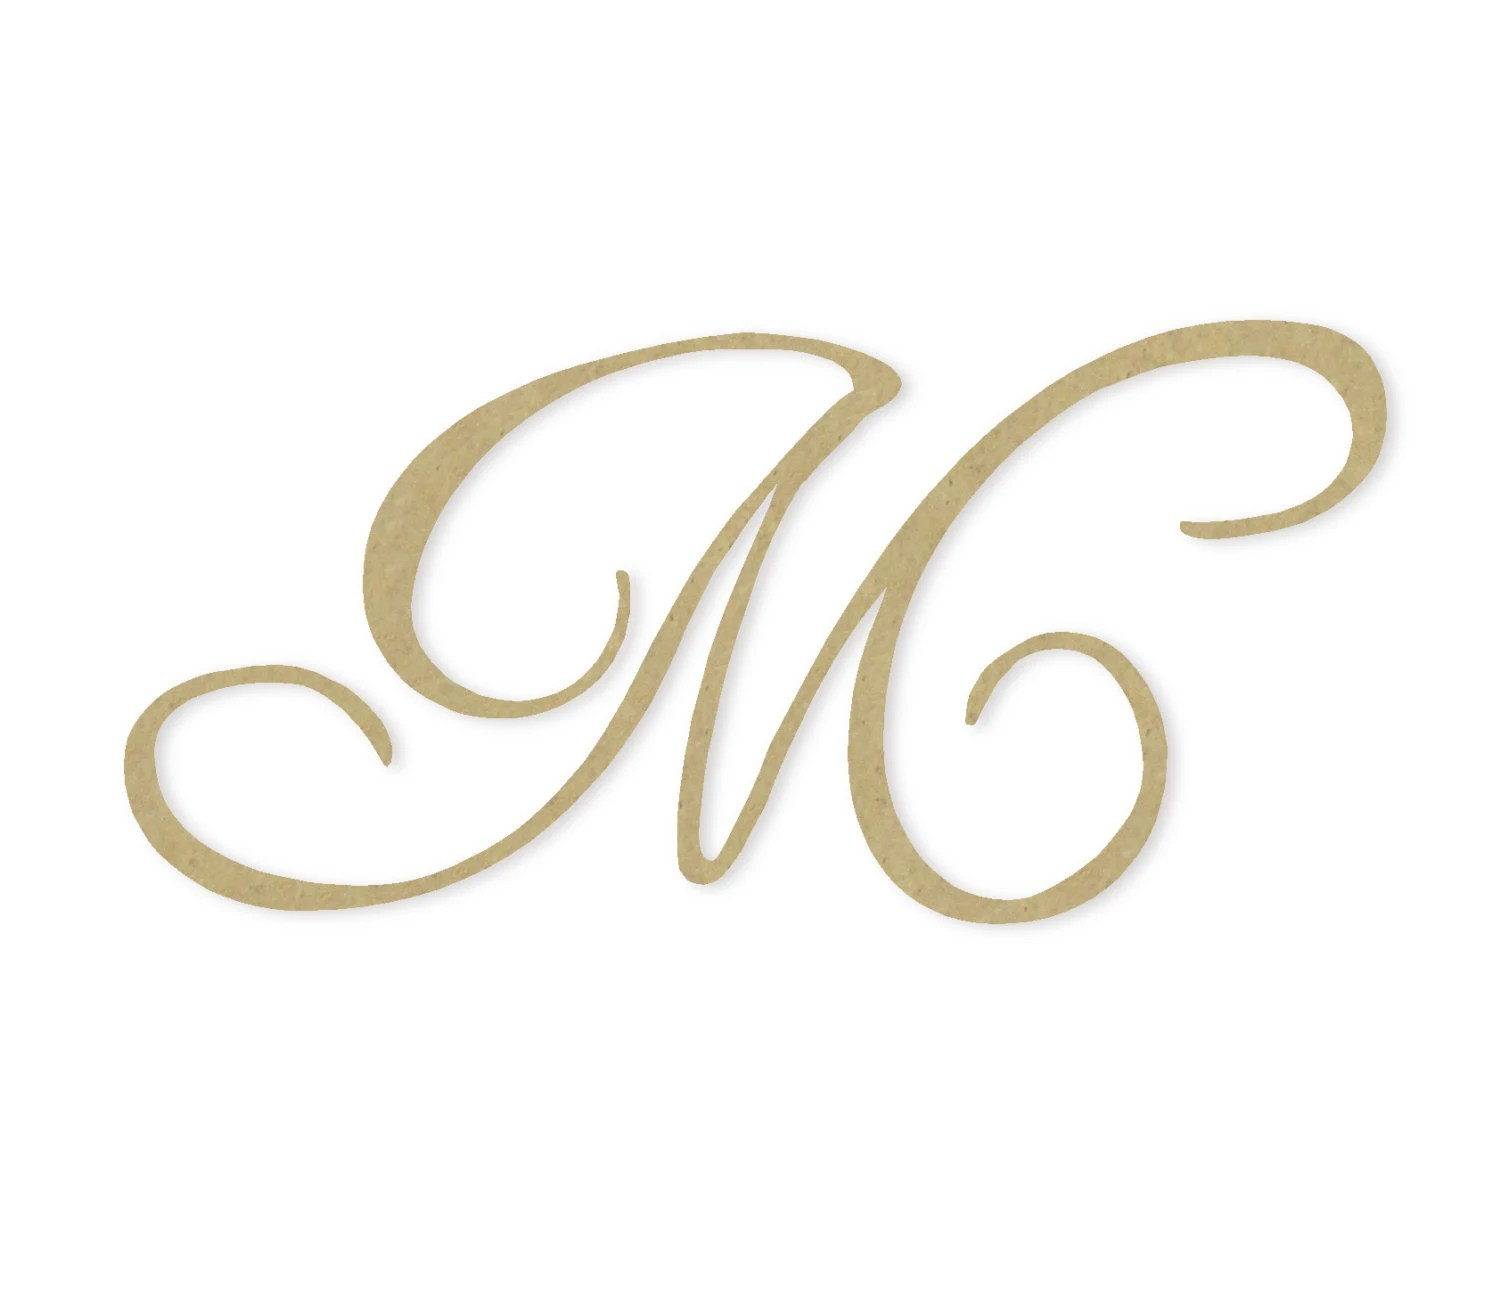 Wooden Monogram Letter M Large Or Small Unfinished By Buildeez